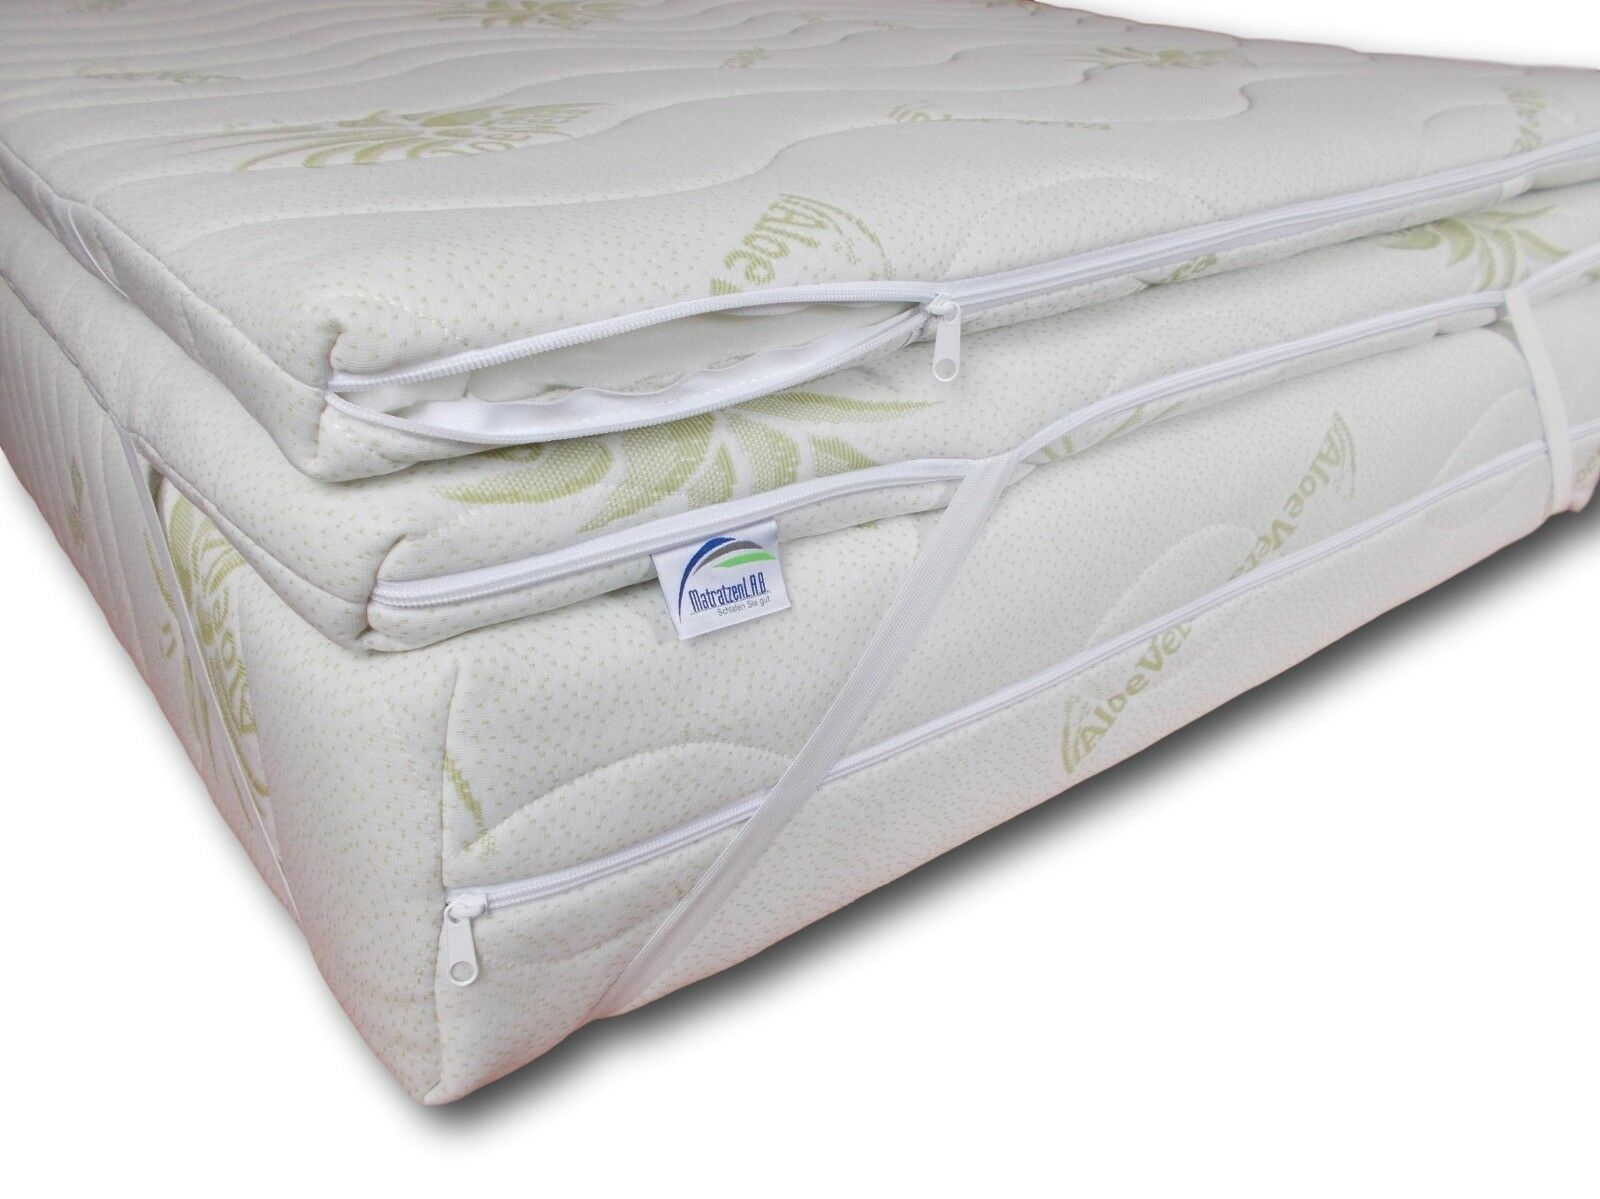 Mattress Topper Foam 180 x 200 Height 8 cm Mattress Protector h4